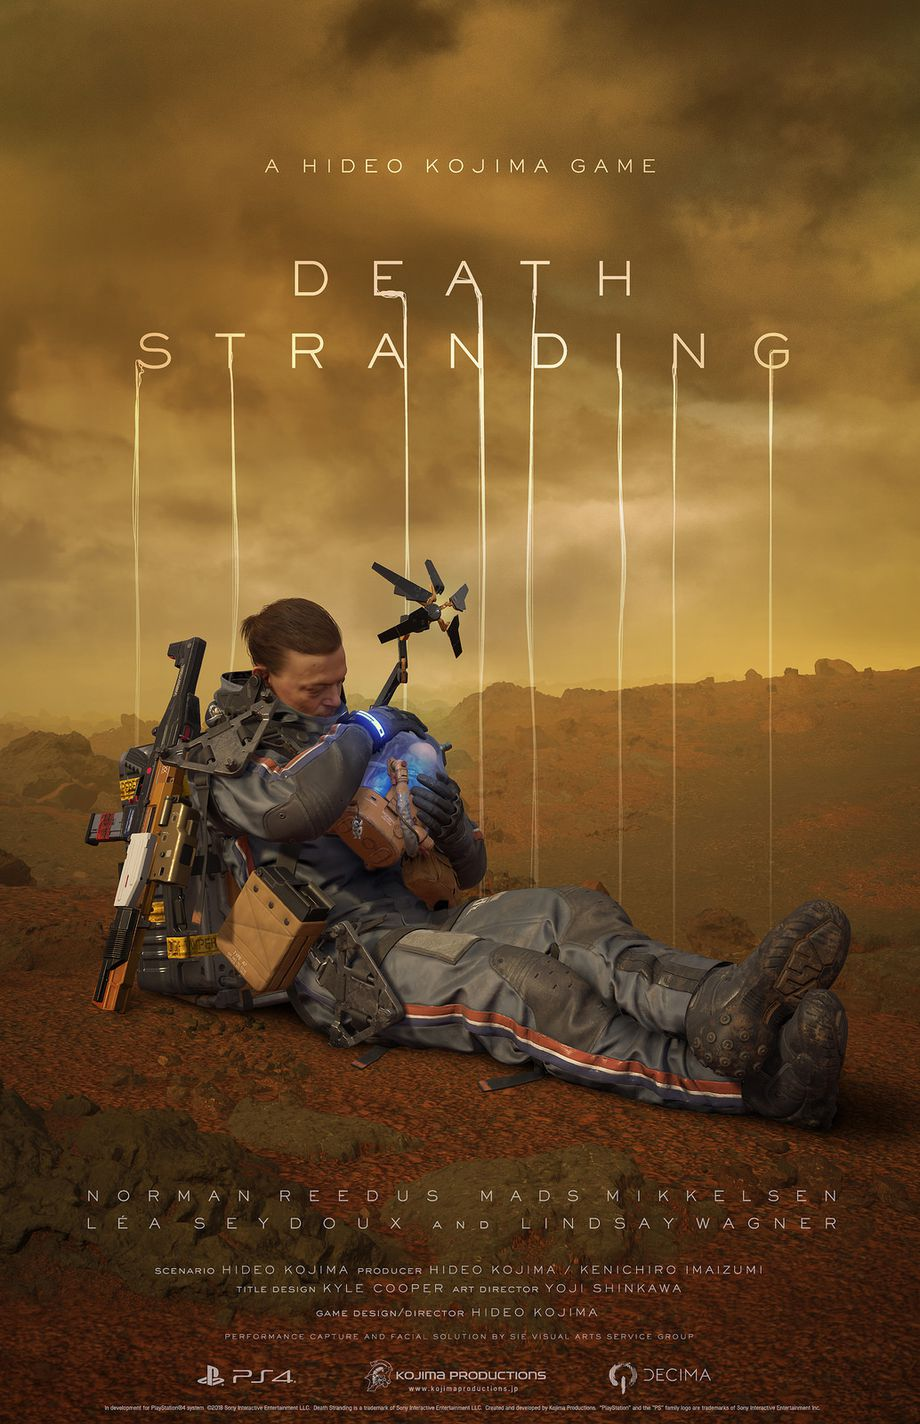 Death Stranding gameplay and trailer